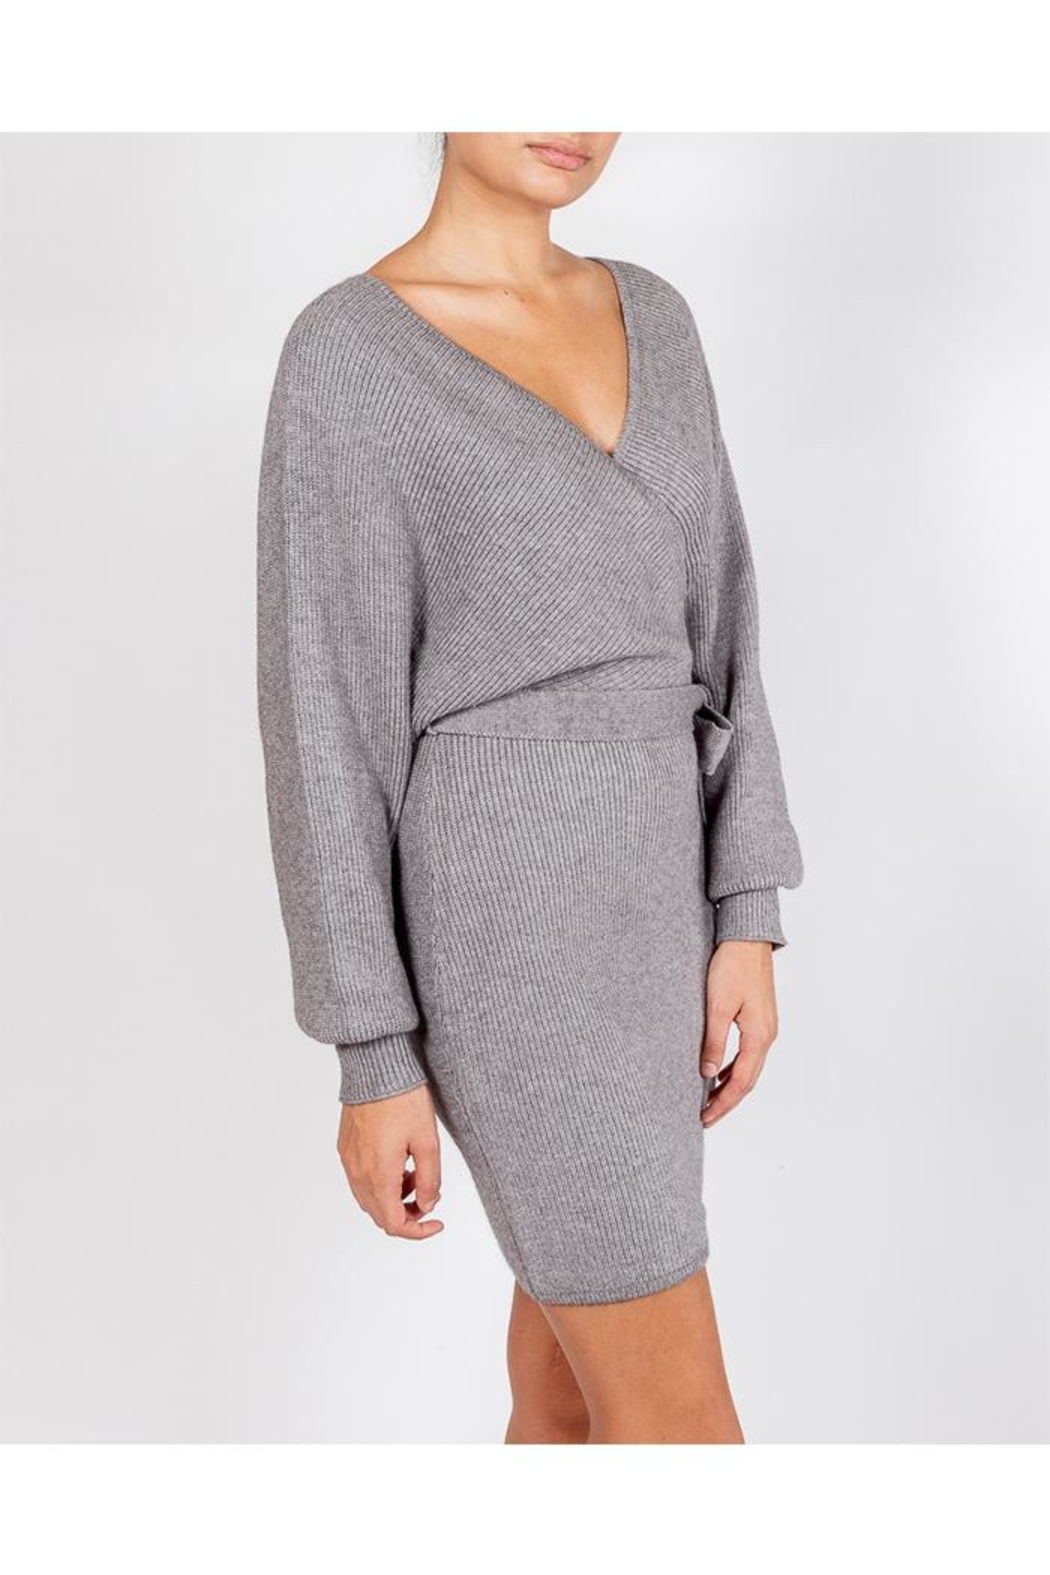 Le Lis Chic Sweater Dress - Front Full Image